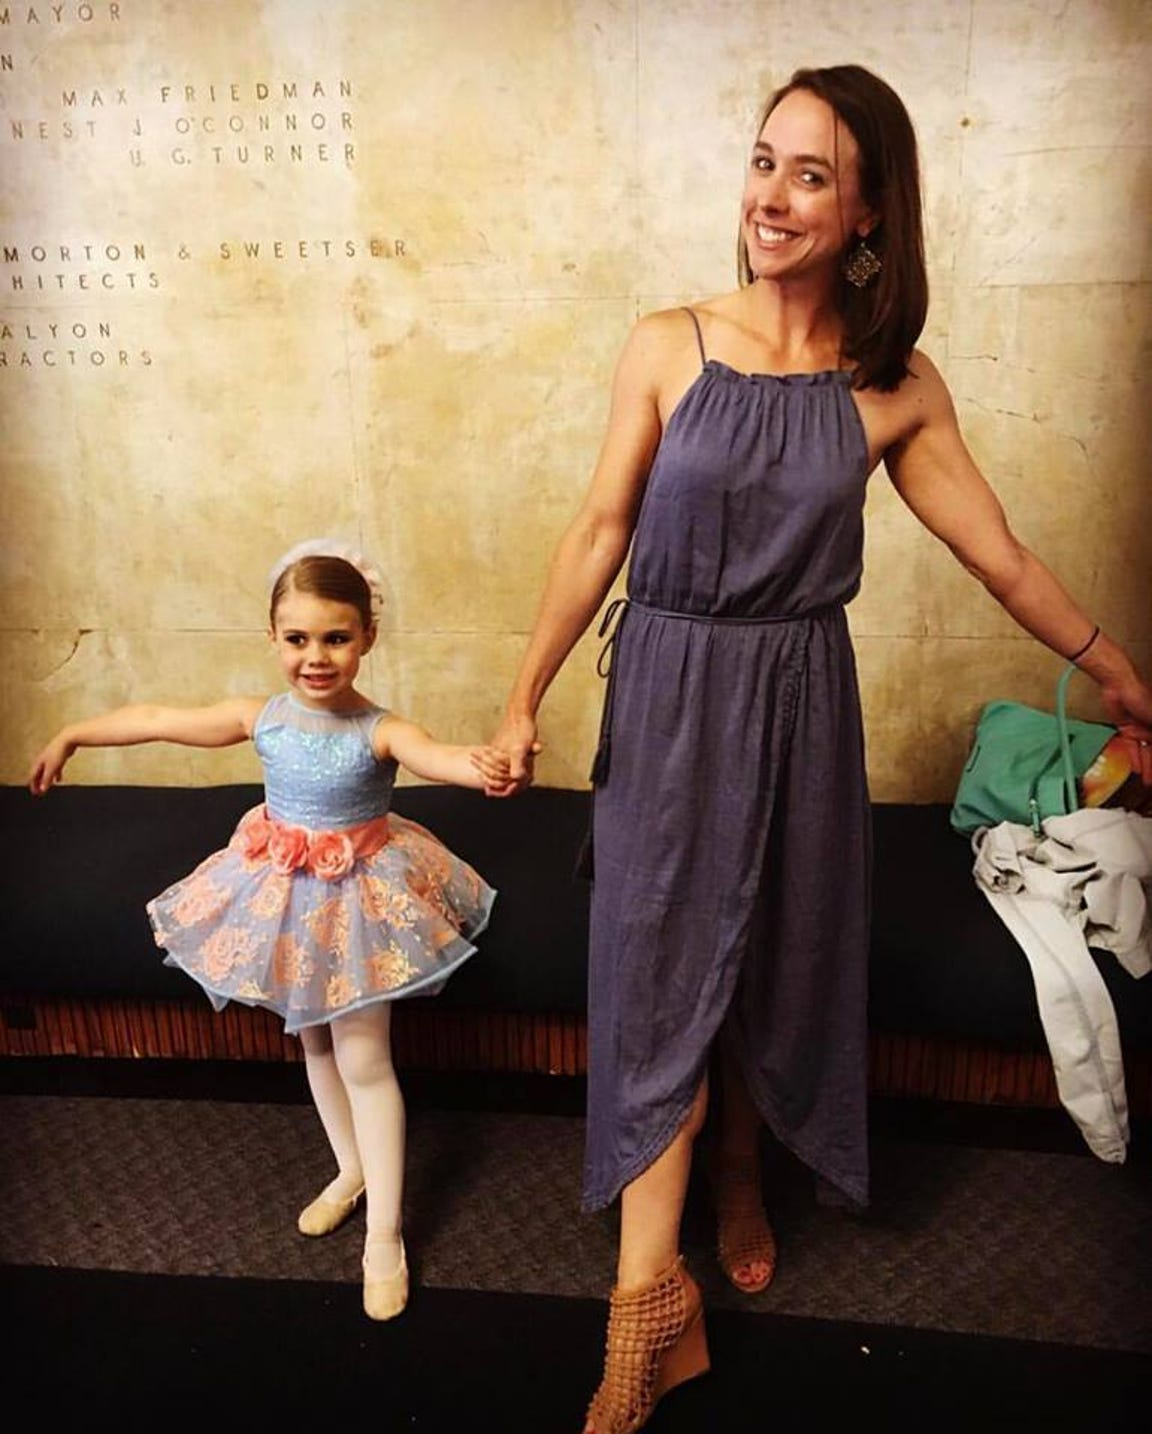 Jenna McCue (right) poses with her niece, Ayla Petrowski at Oak Ridge Academy of Dance. Jenna studied there as a child and Ayla has followed in her footsteps.